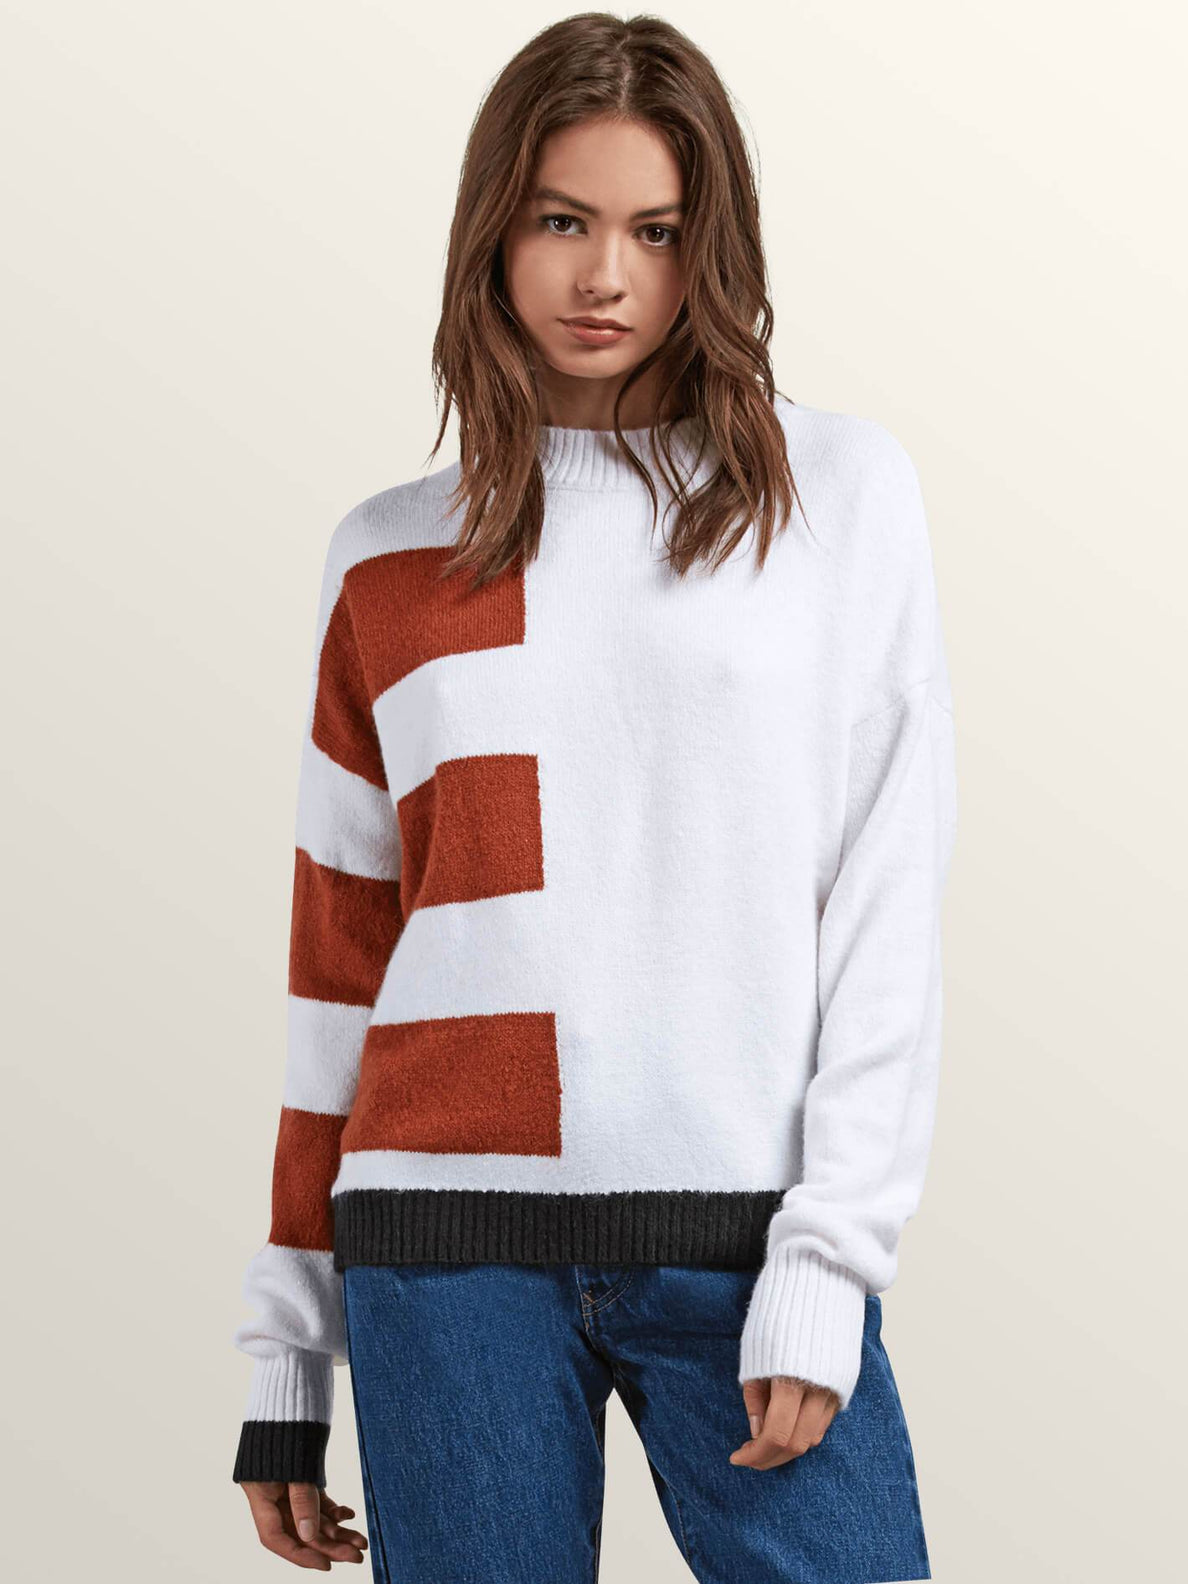 Cold Band Sweater In White, Front View